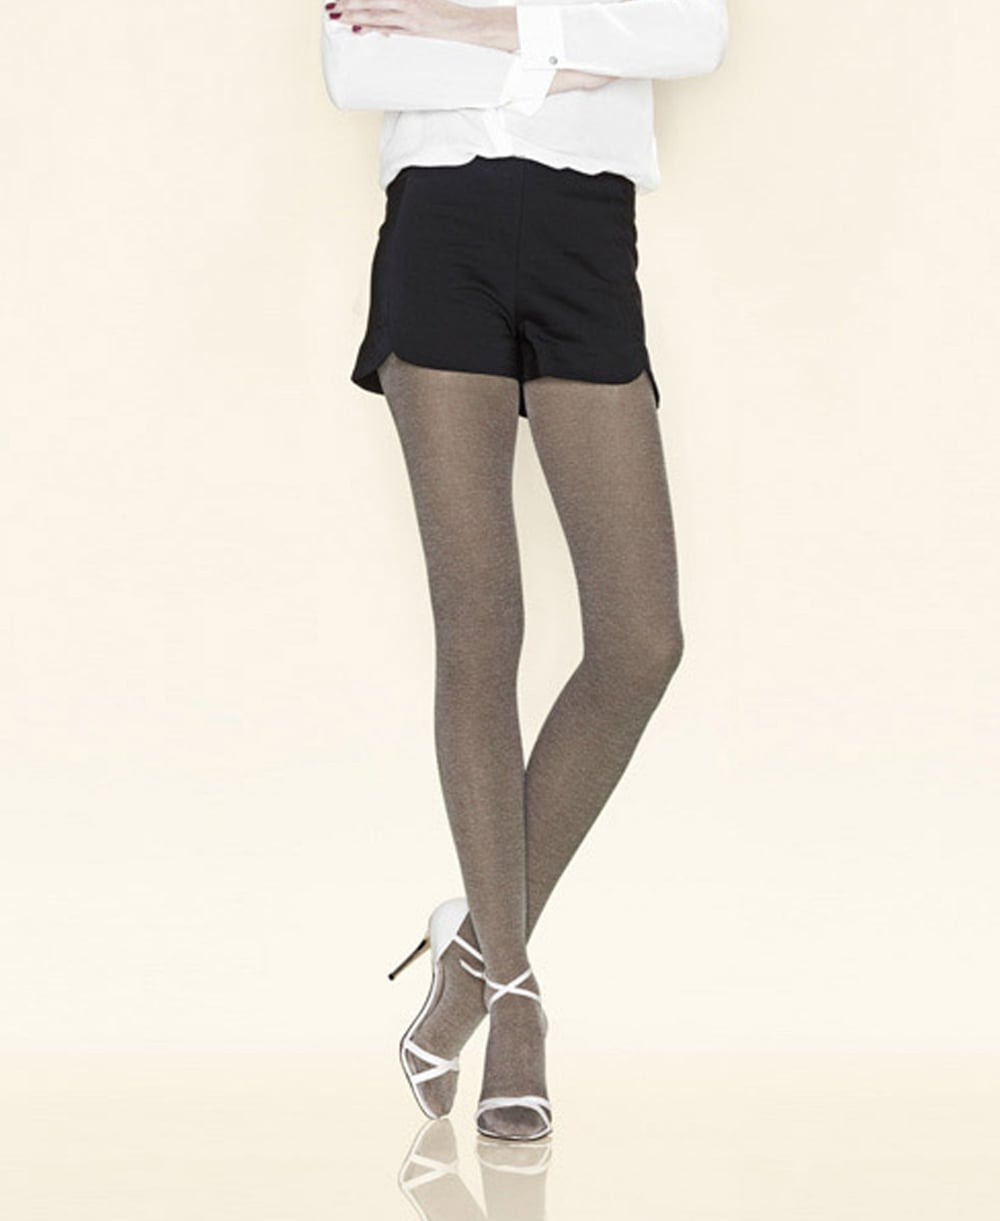 316e101a907 Gerbe Elanore Cotton Tights - Tights from luxury-legs.com UK